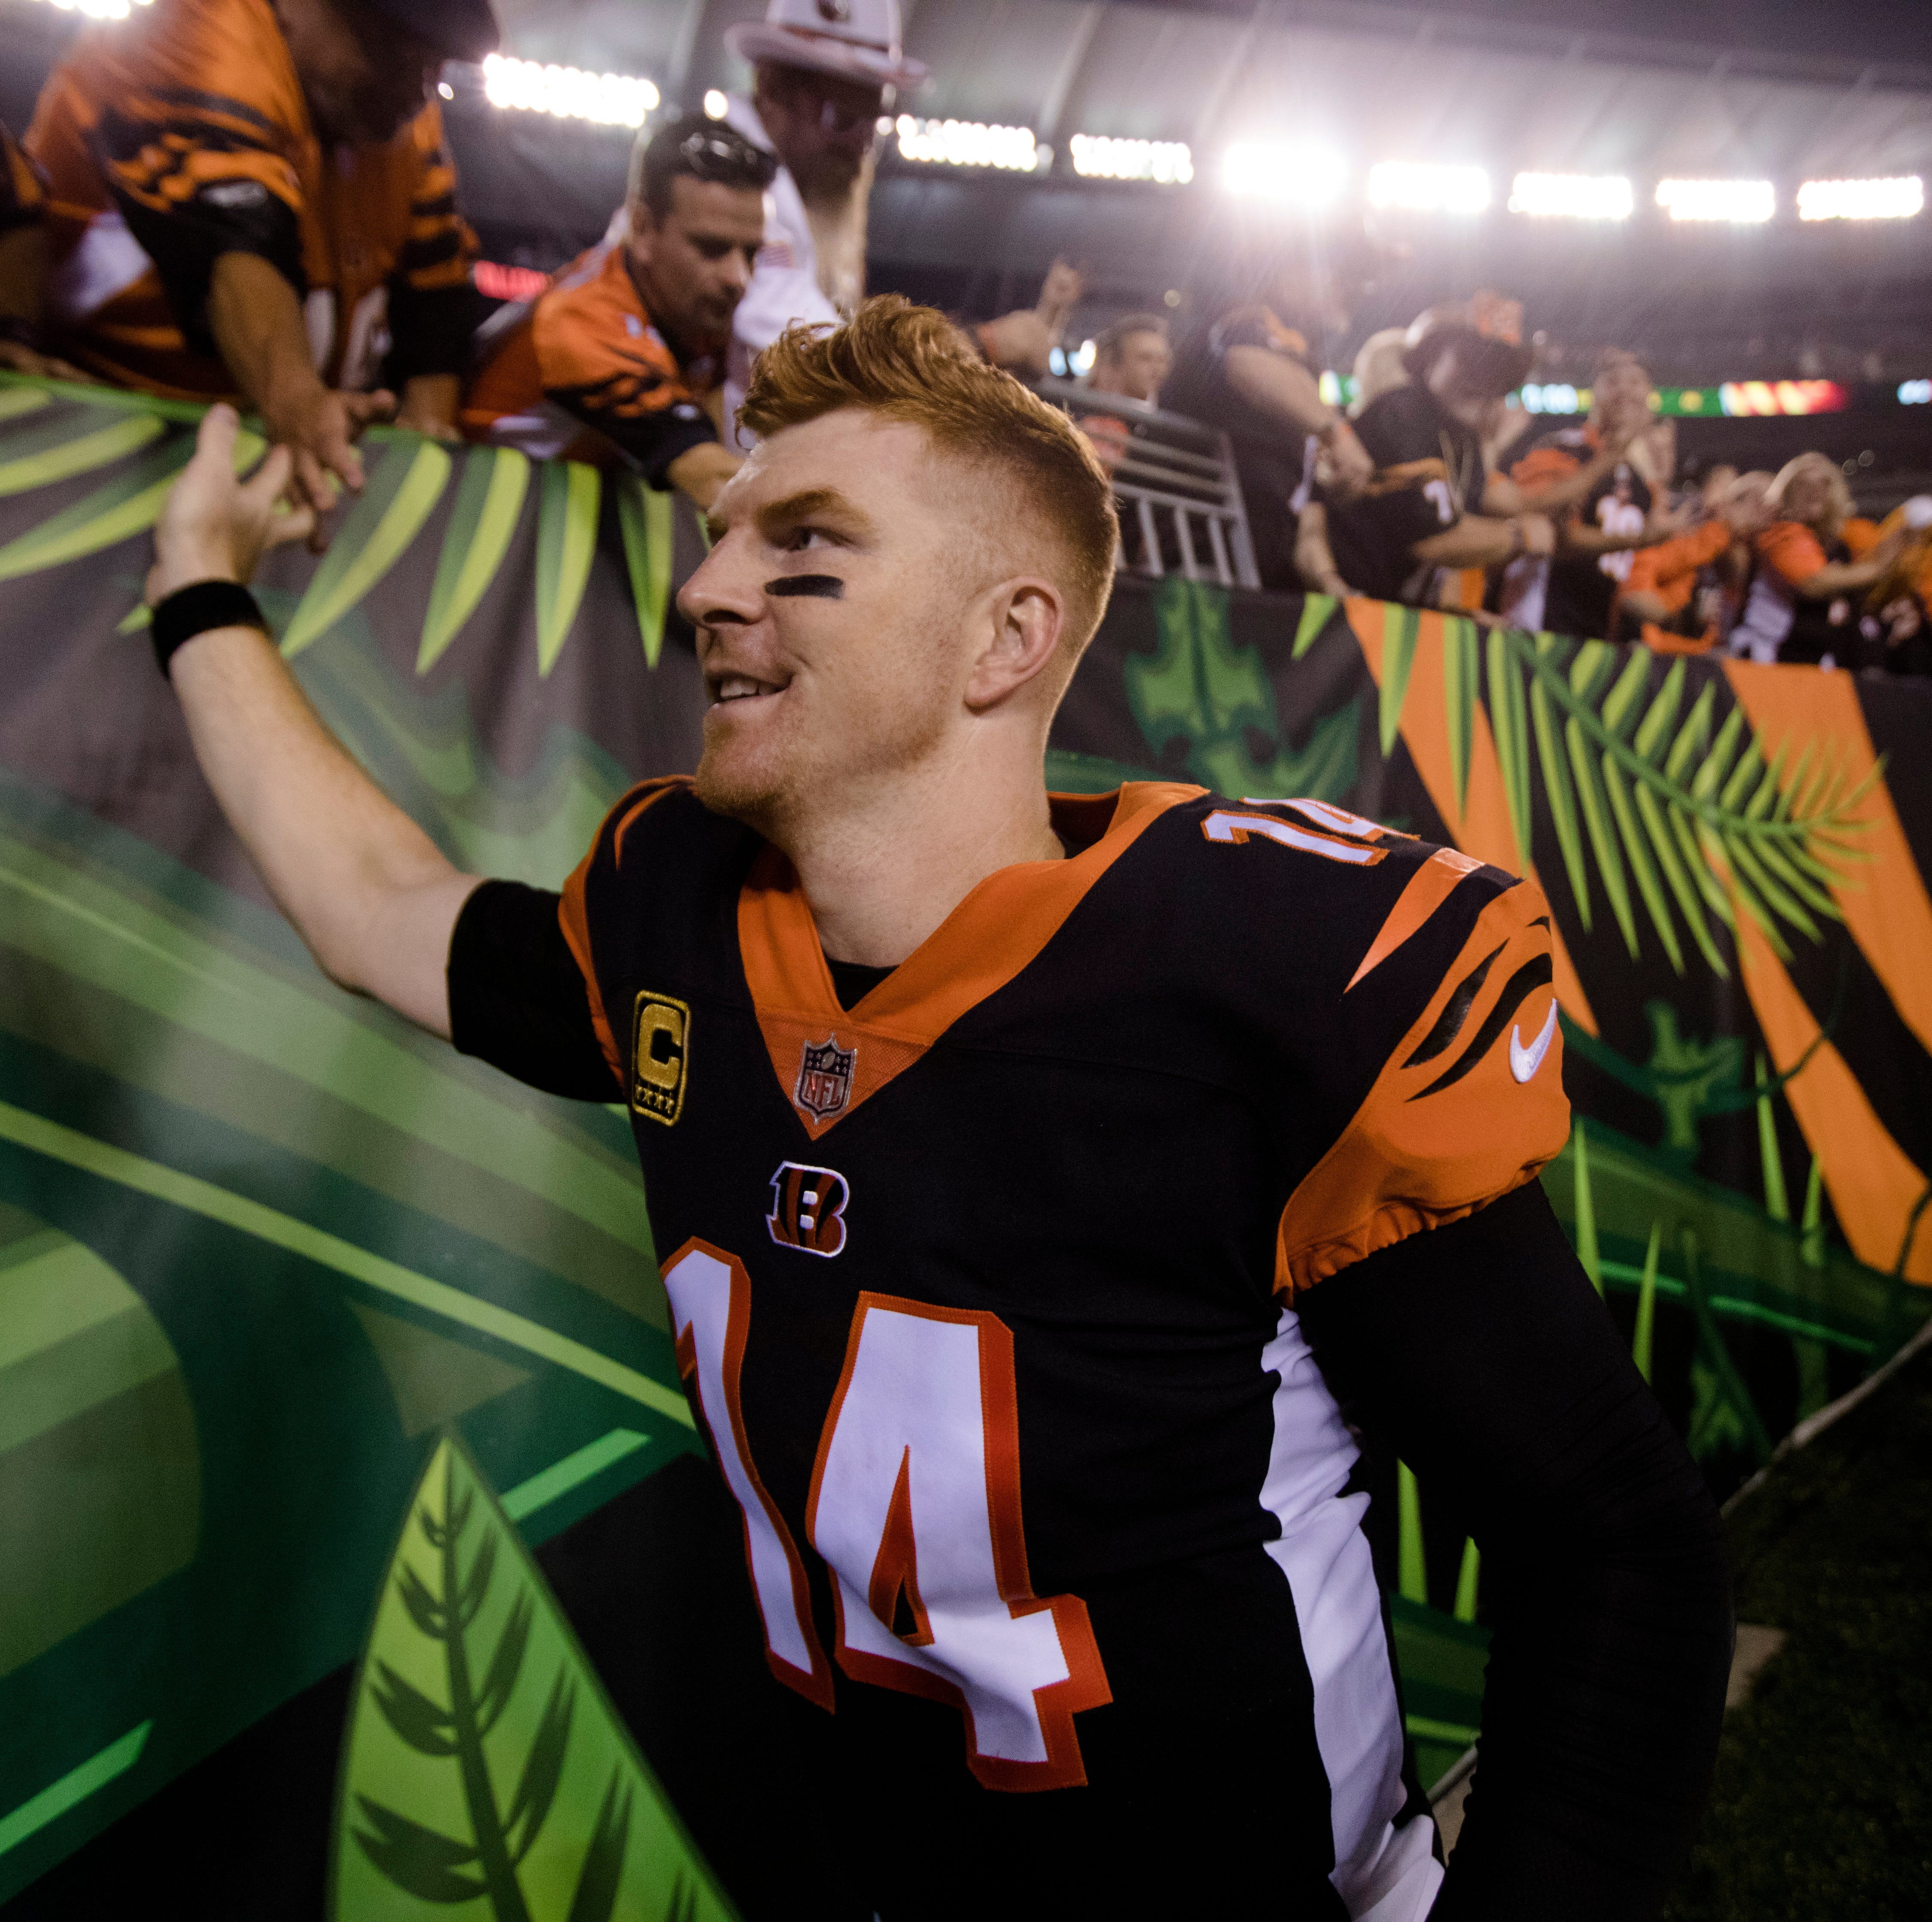 Power rankings: No. 8 Bengals have 'basically never won a big game' at Paul Brown Stadium